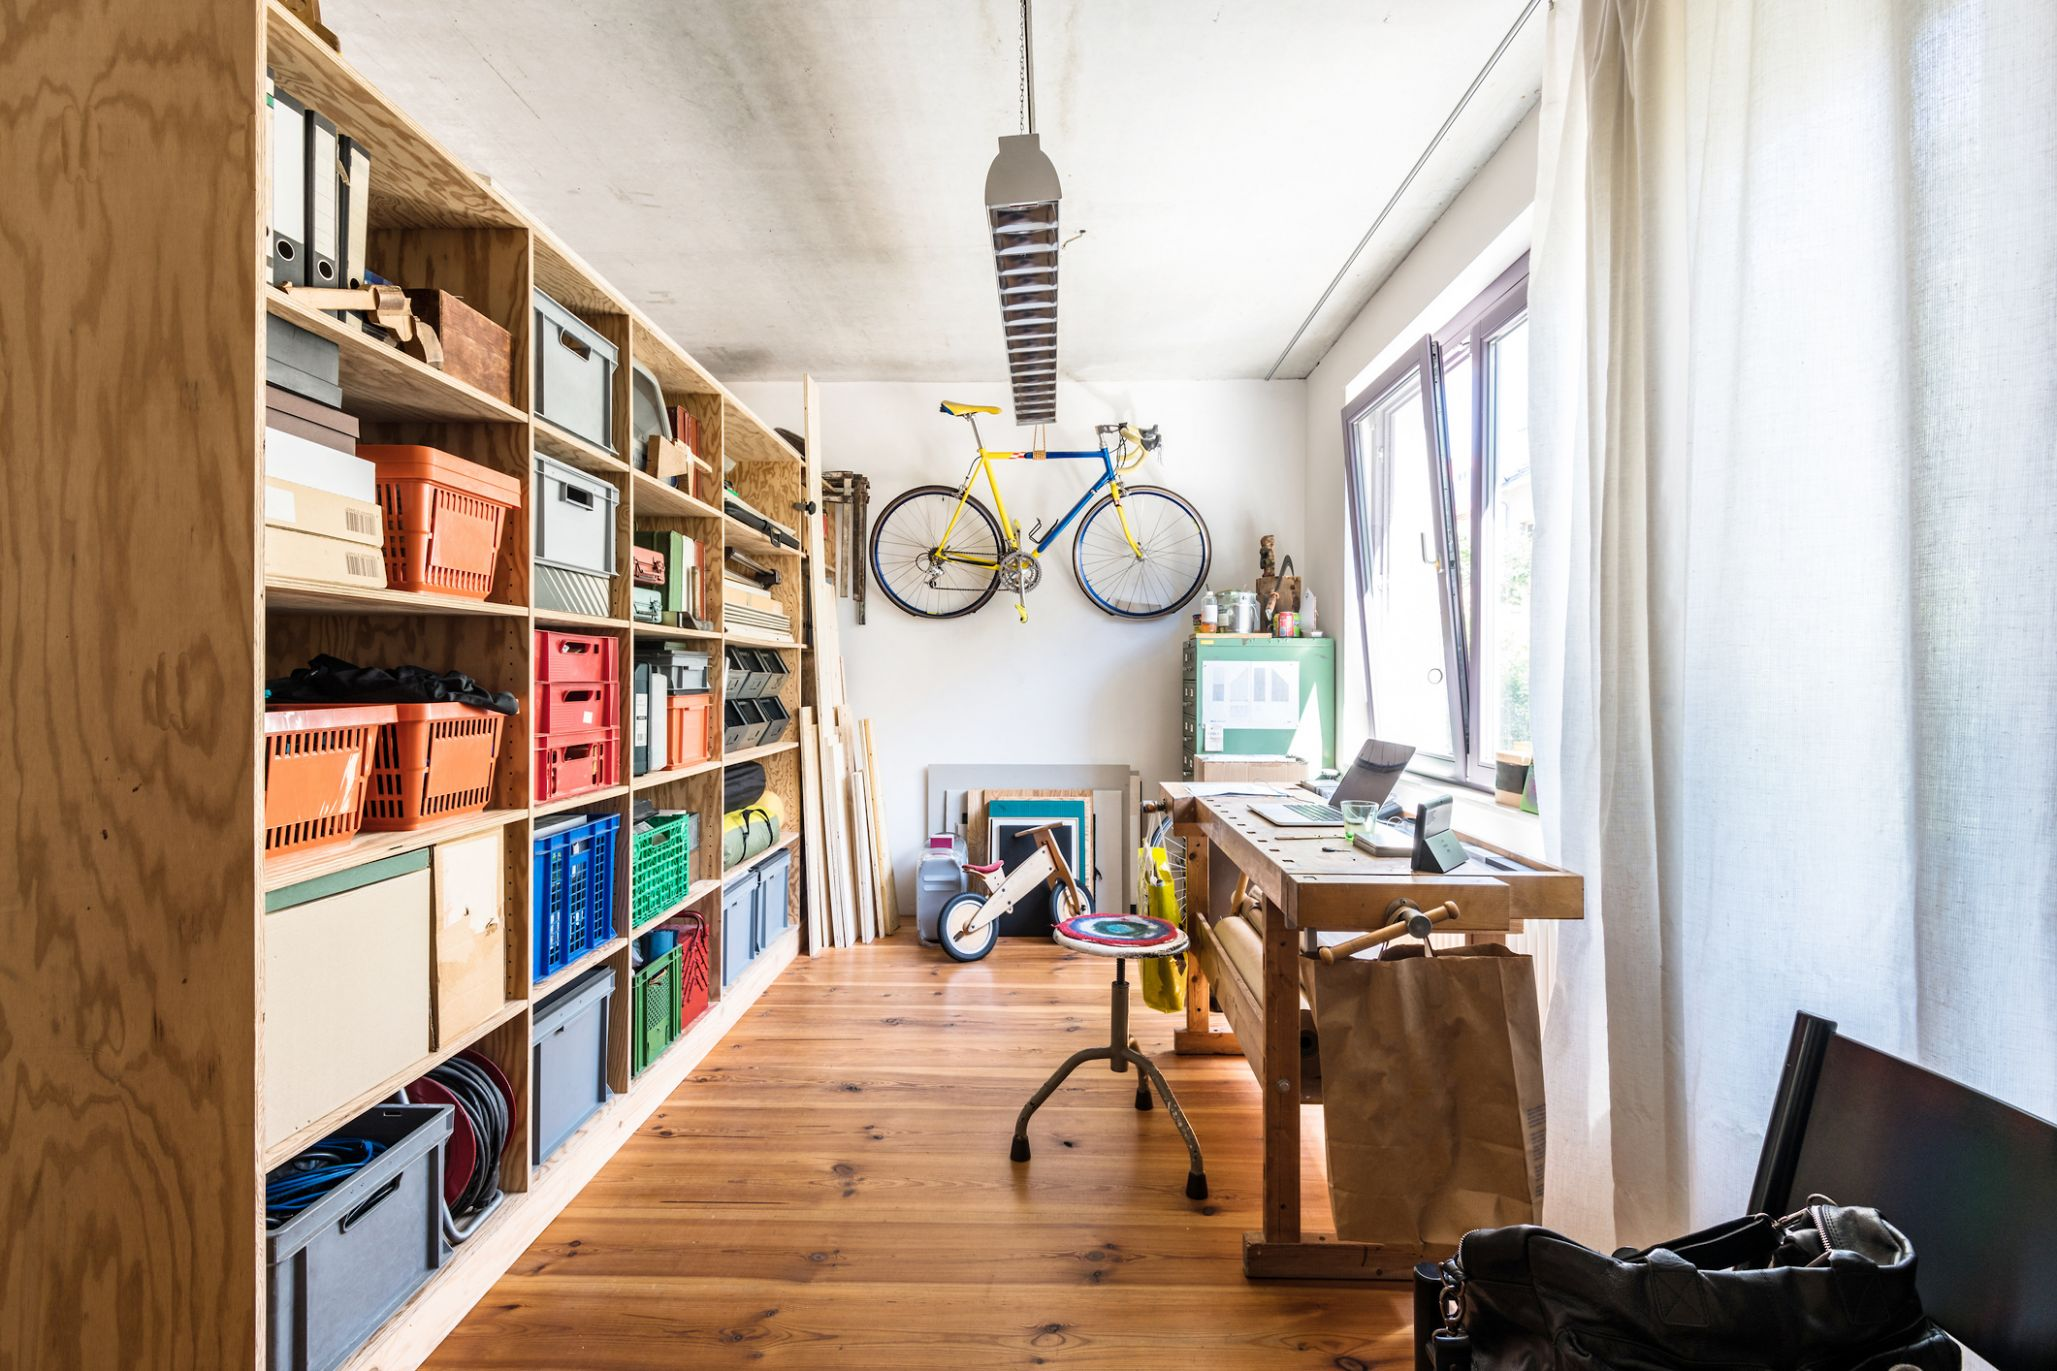 12 Modern and Chic Ideas for Your Home Office - Freshome